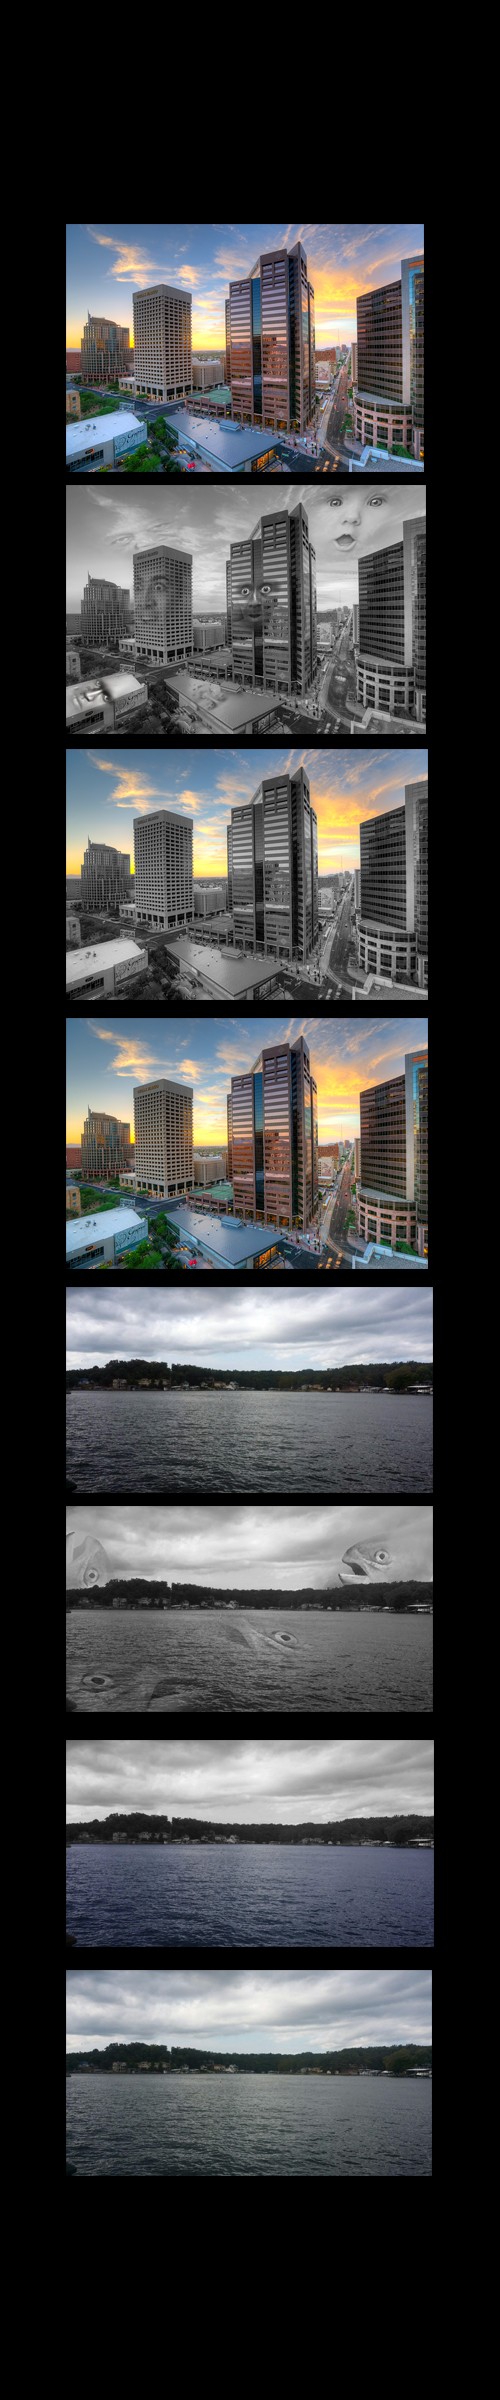 """Created By: Joseph Luley - For: Digital Art Studio FA2016 SCC - Project Two """" """"Dreamscapes""""-  Each Students were required to make four specific alterations to a single photo of their choosing, and an addition fifth photo with their own alterations of their liking. In My case, a City And a Lake."""